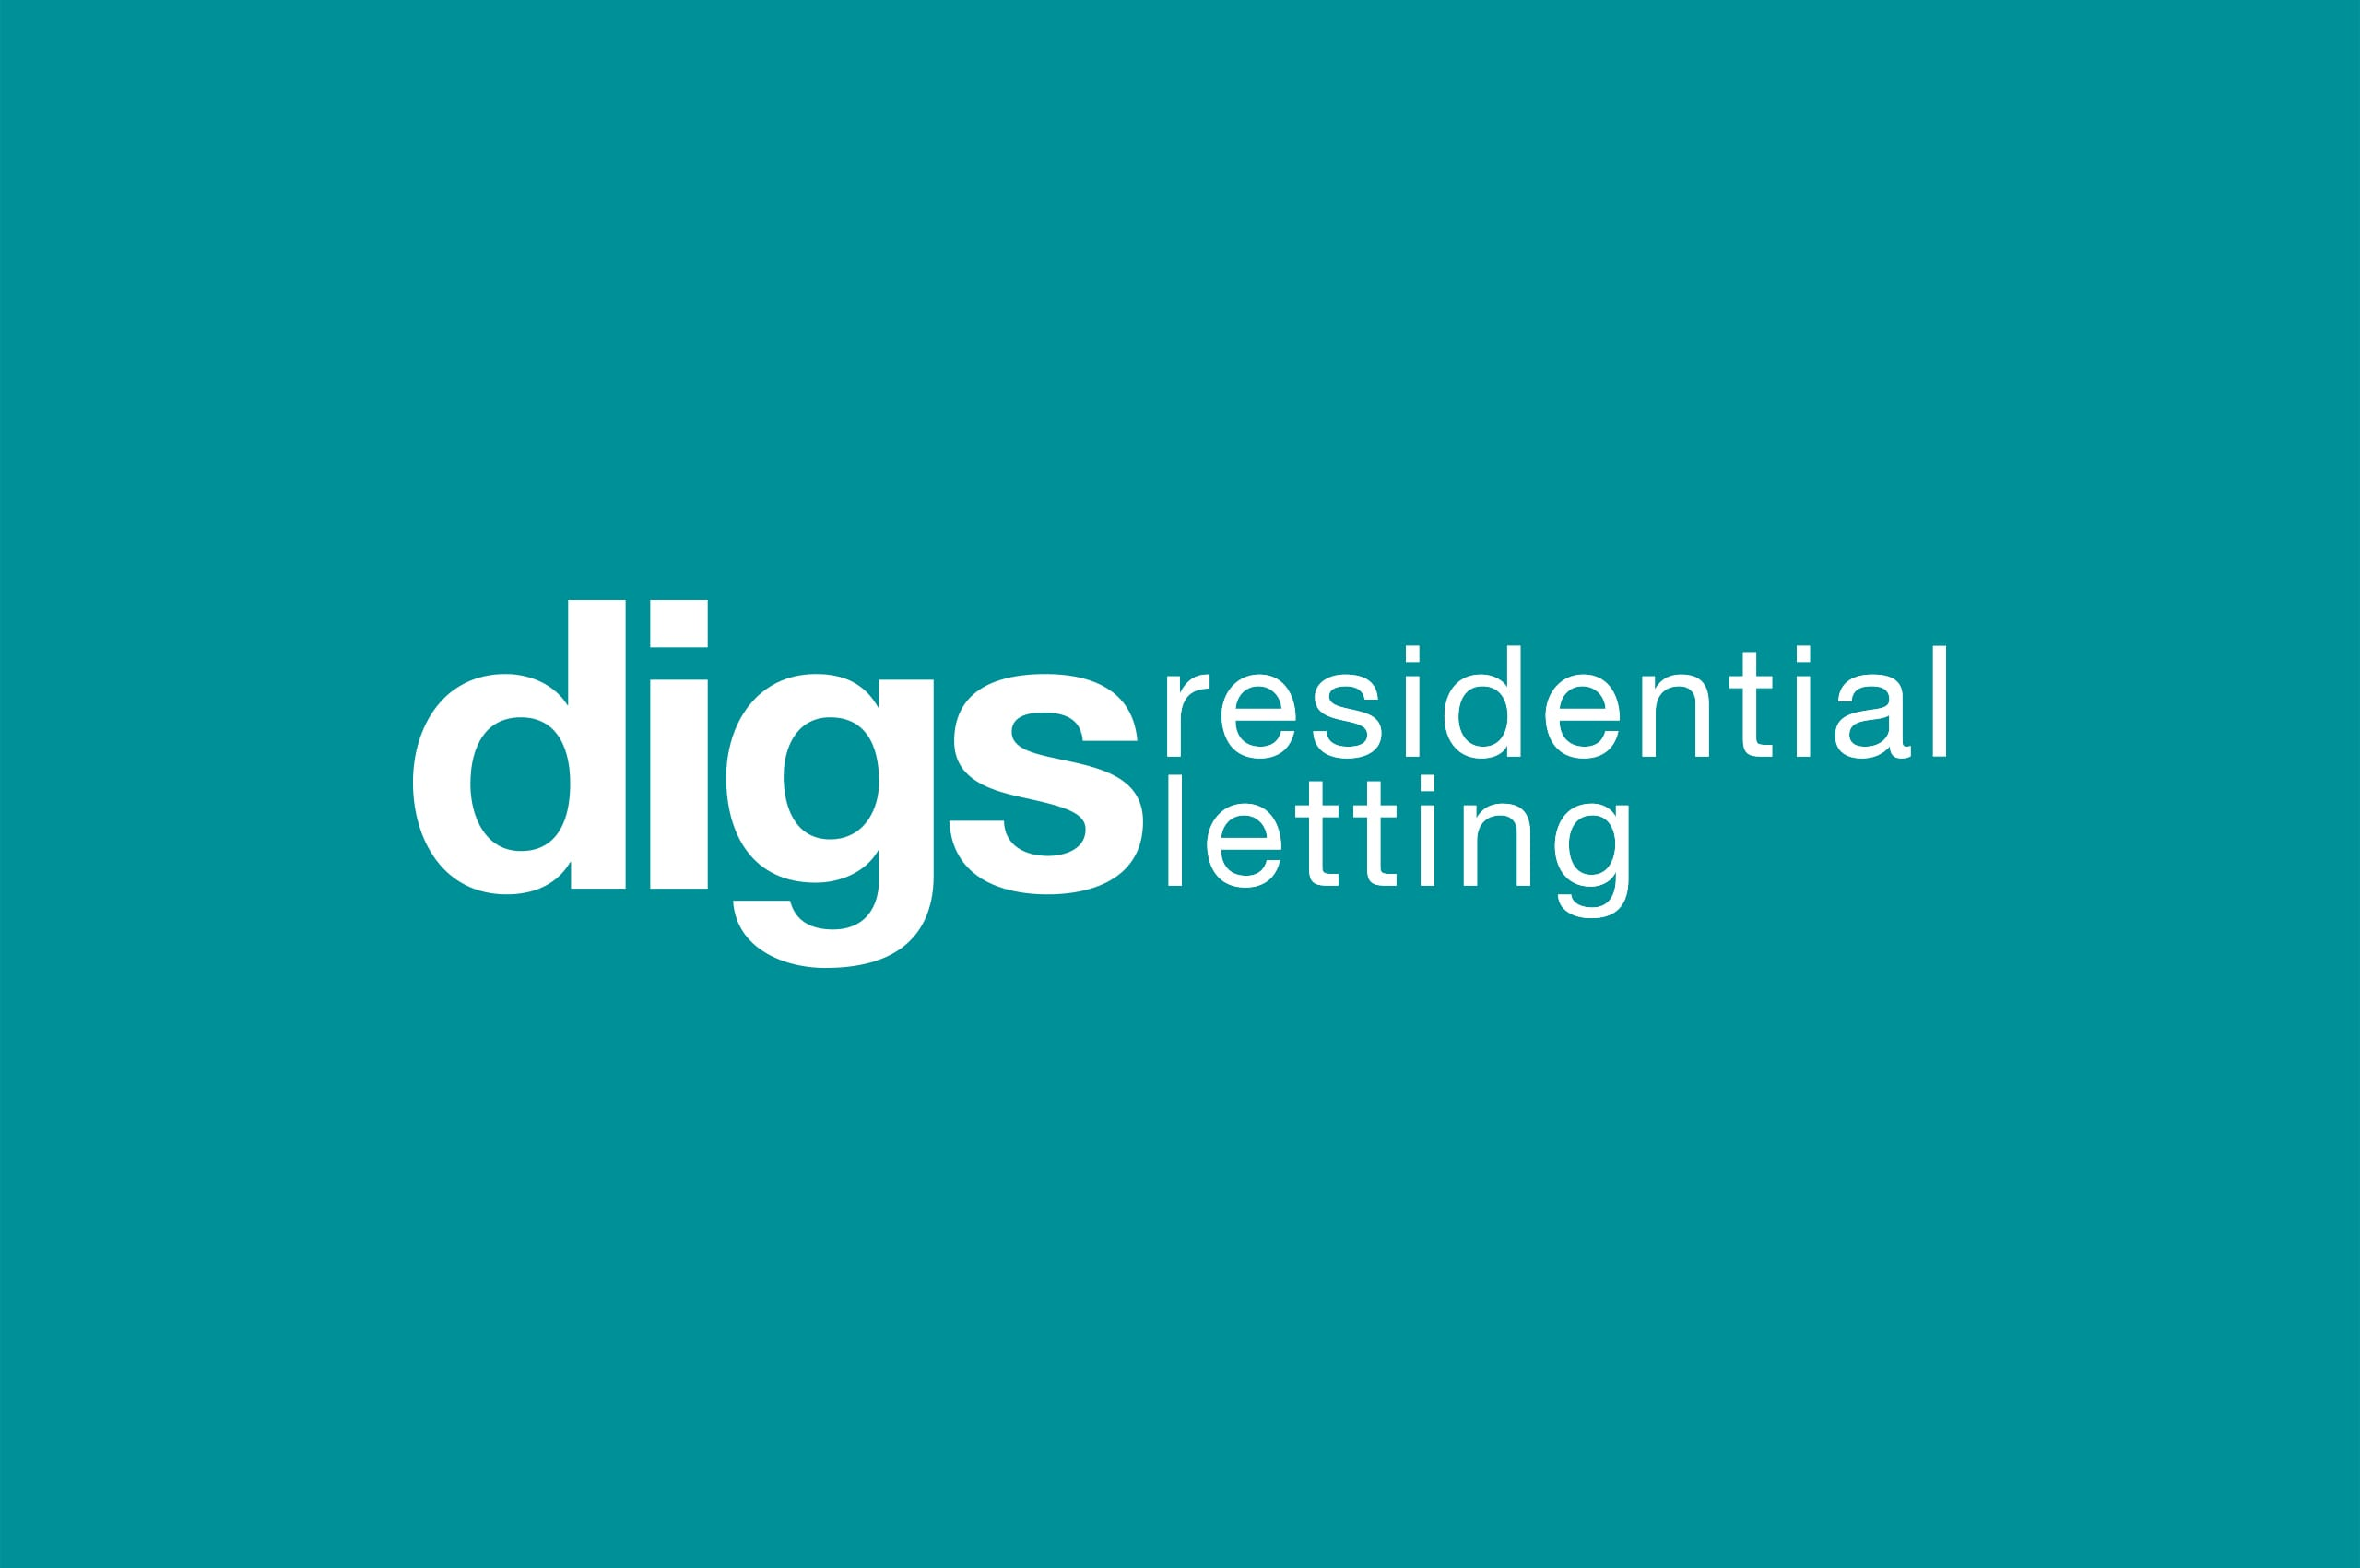 Digs Residential Letting Logo